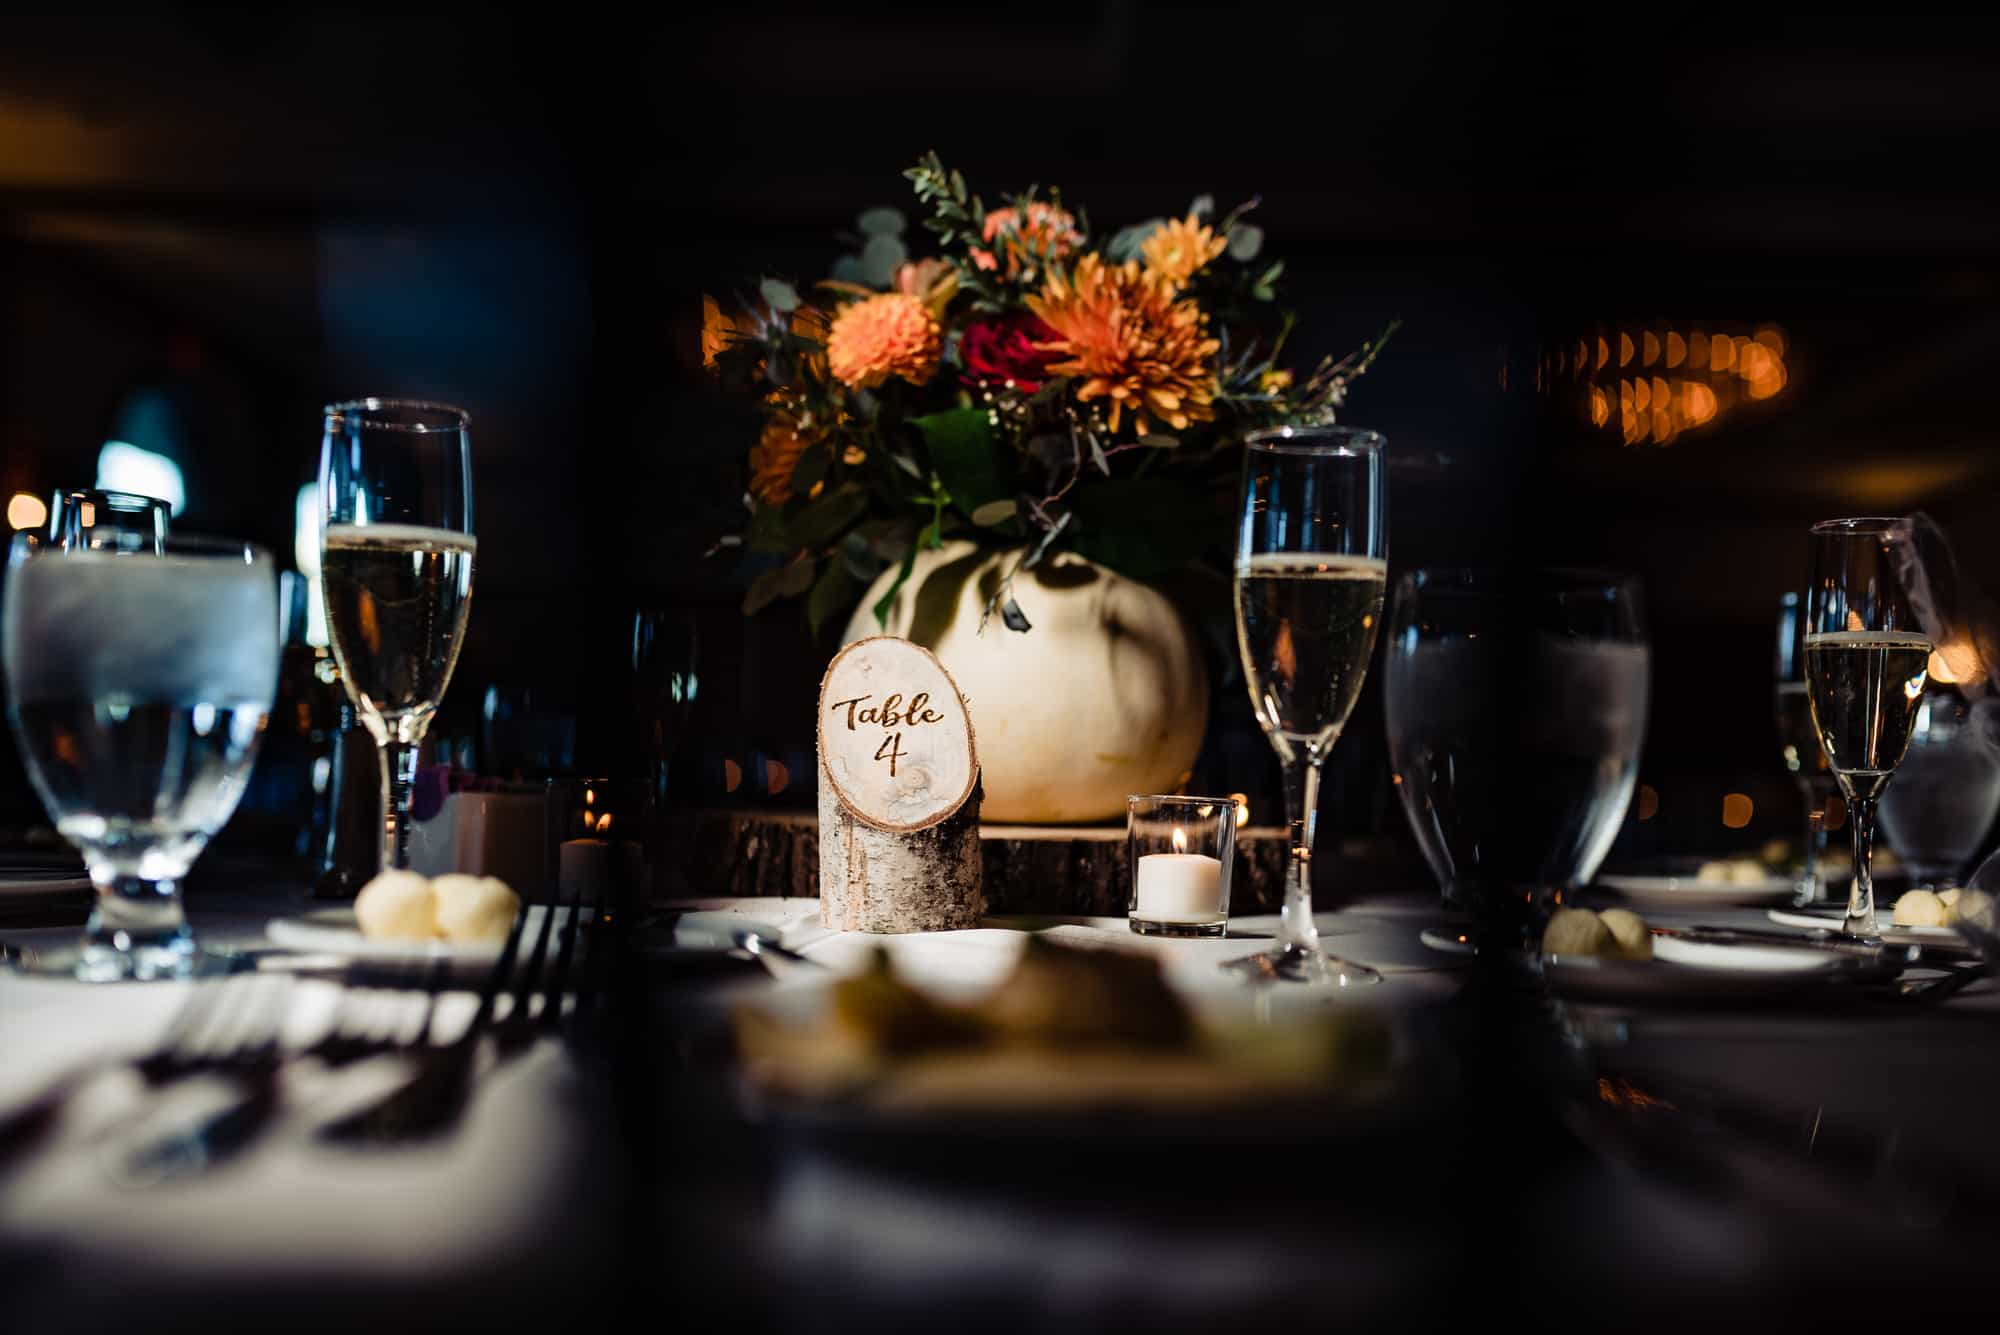 Fall wedding guest table decorations featuring flowers in a pumpkin